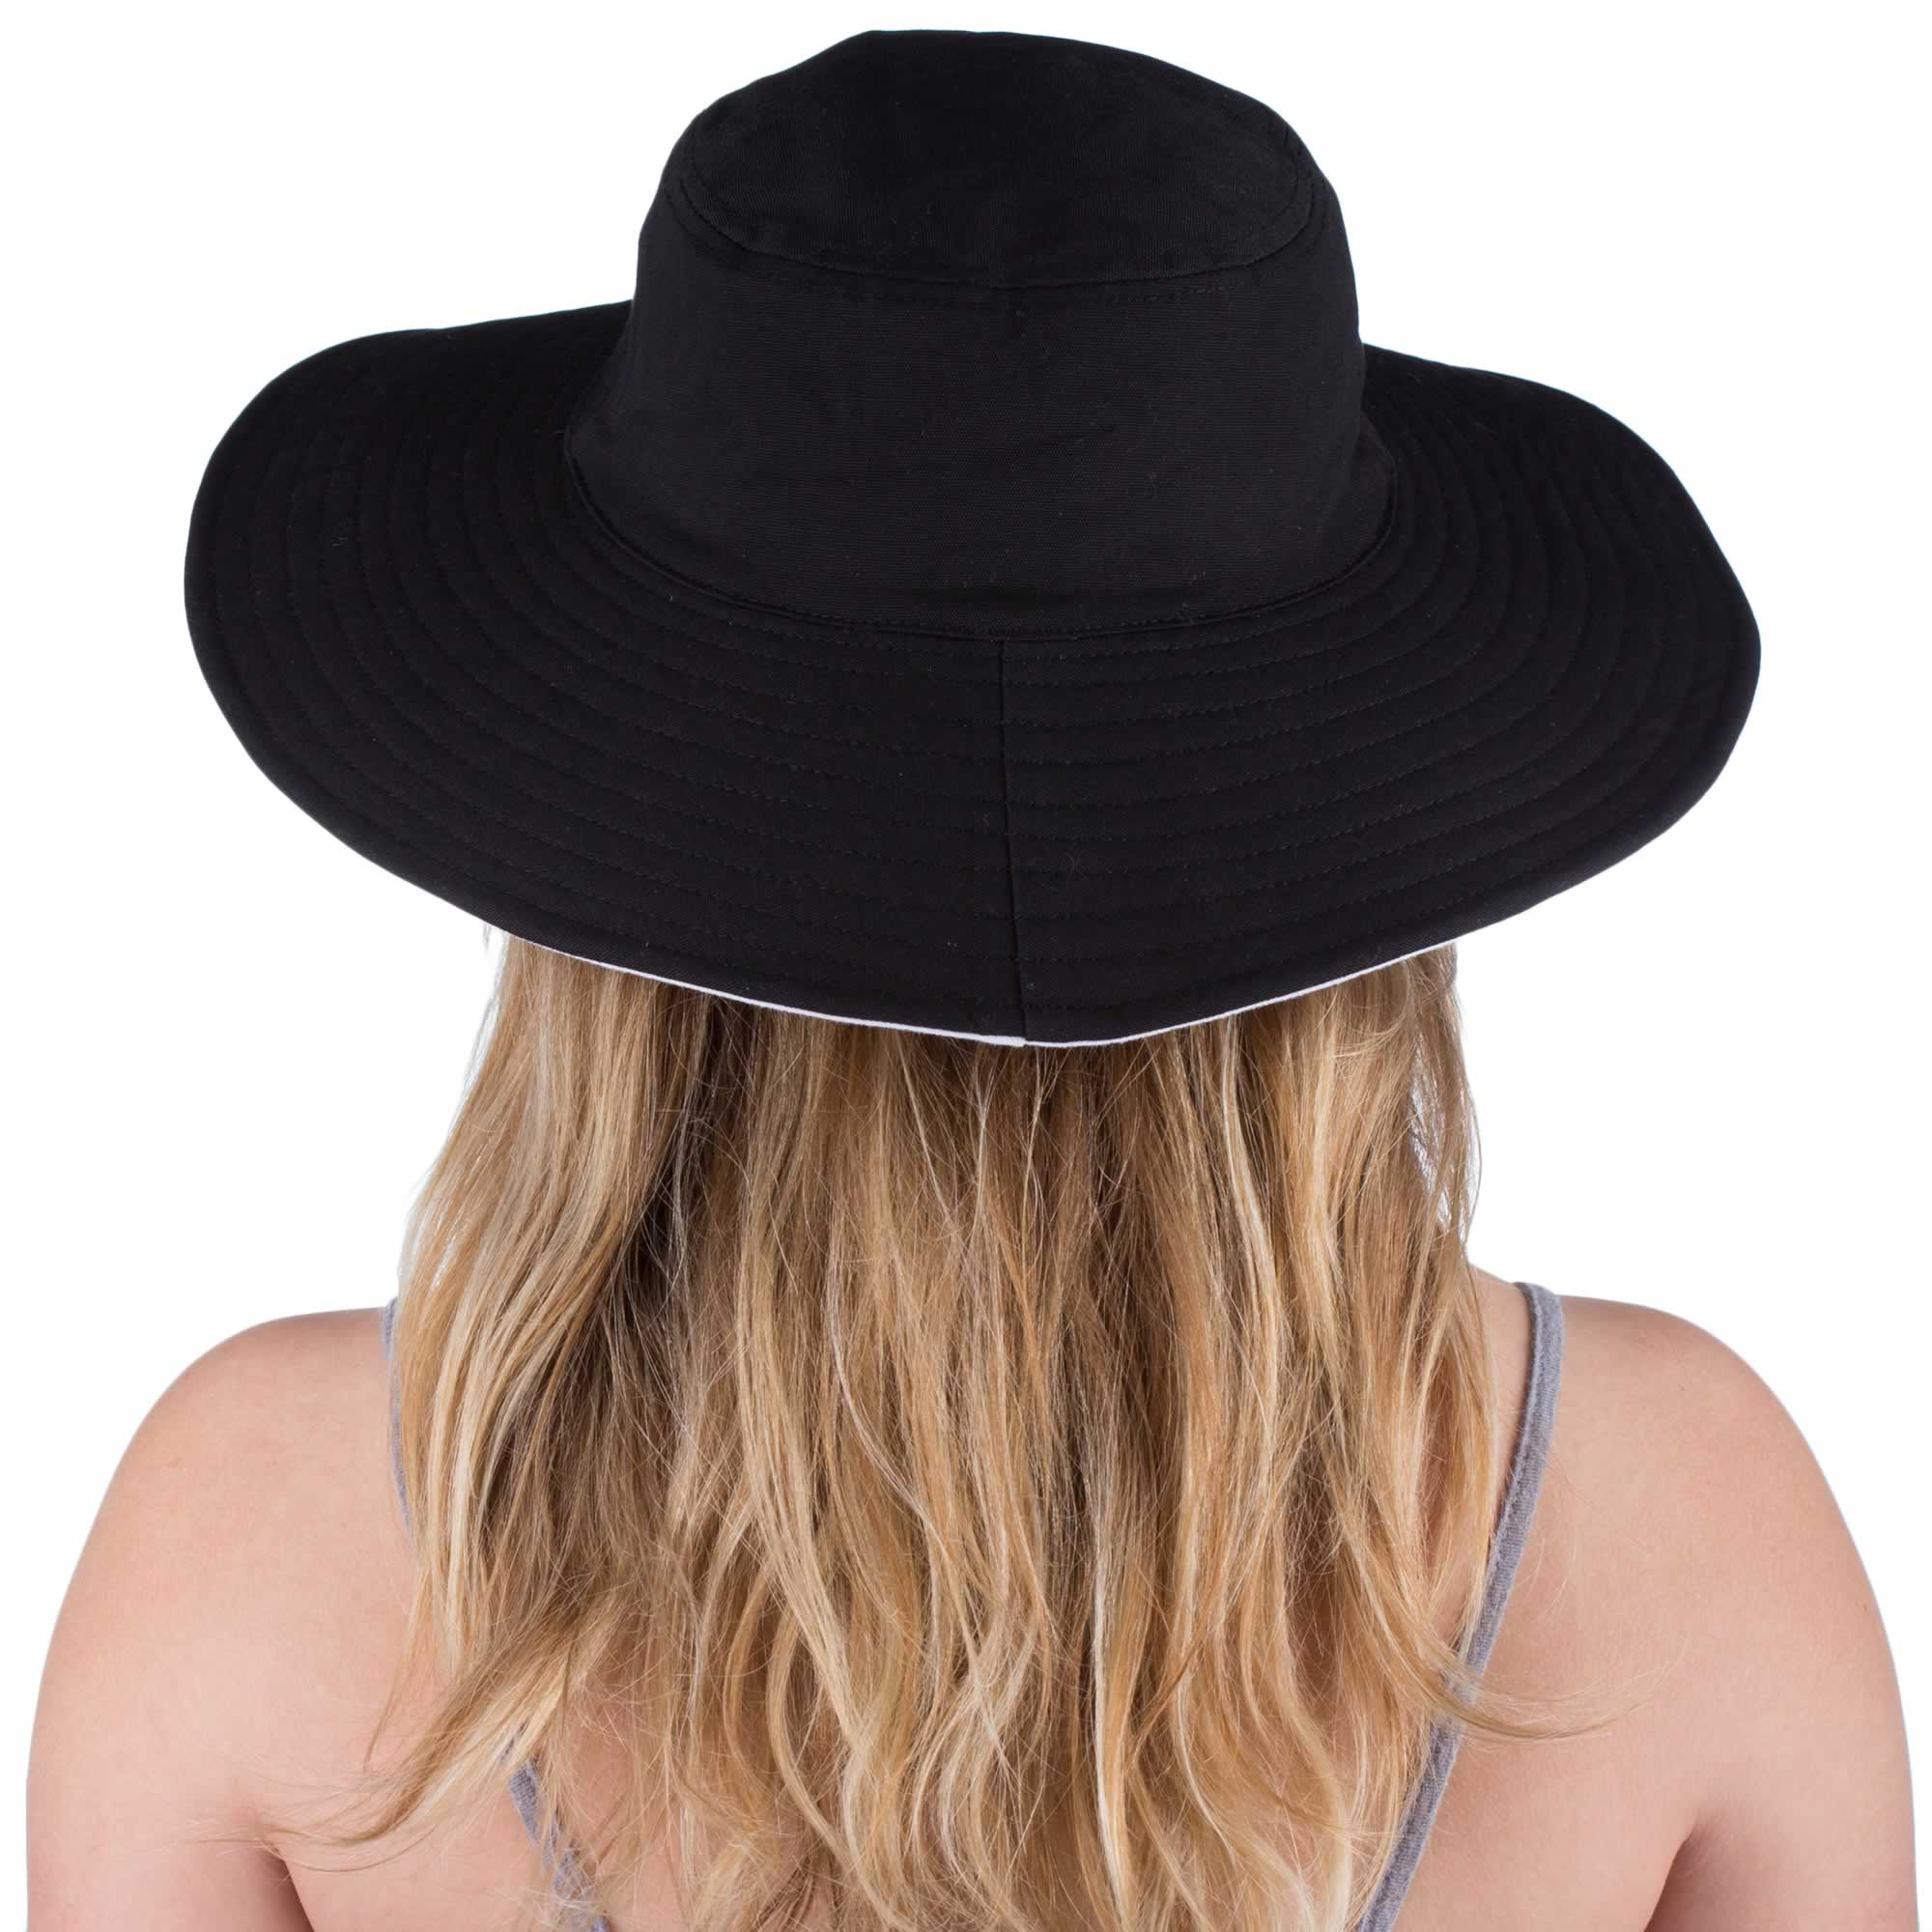 ed94a0cd40 Womens Wide Brim Reversible Sun Hat - UV-Blocker